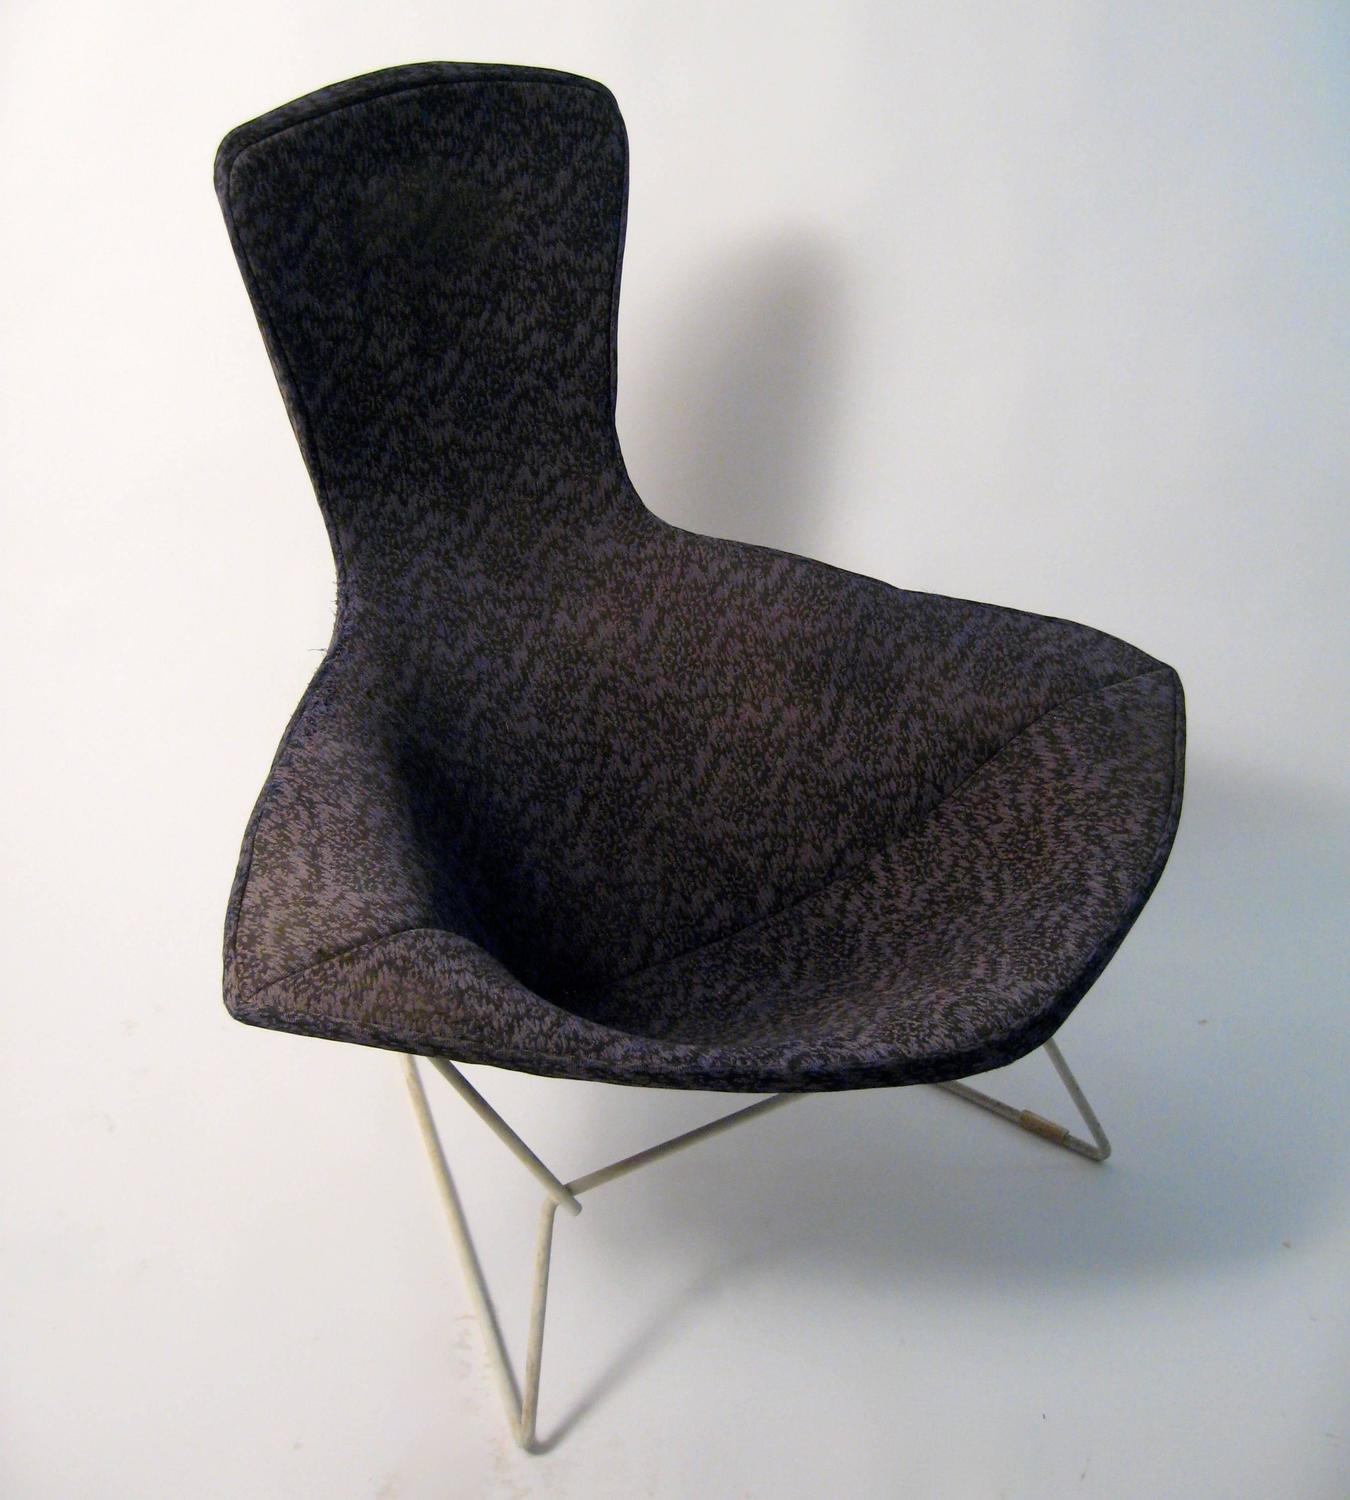 bertoia style chair white back harry bird for sale at 1stdibs